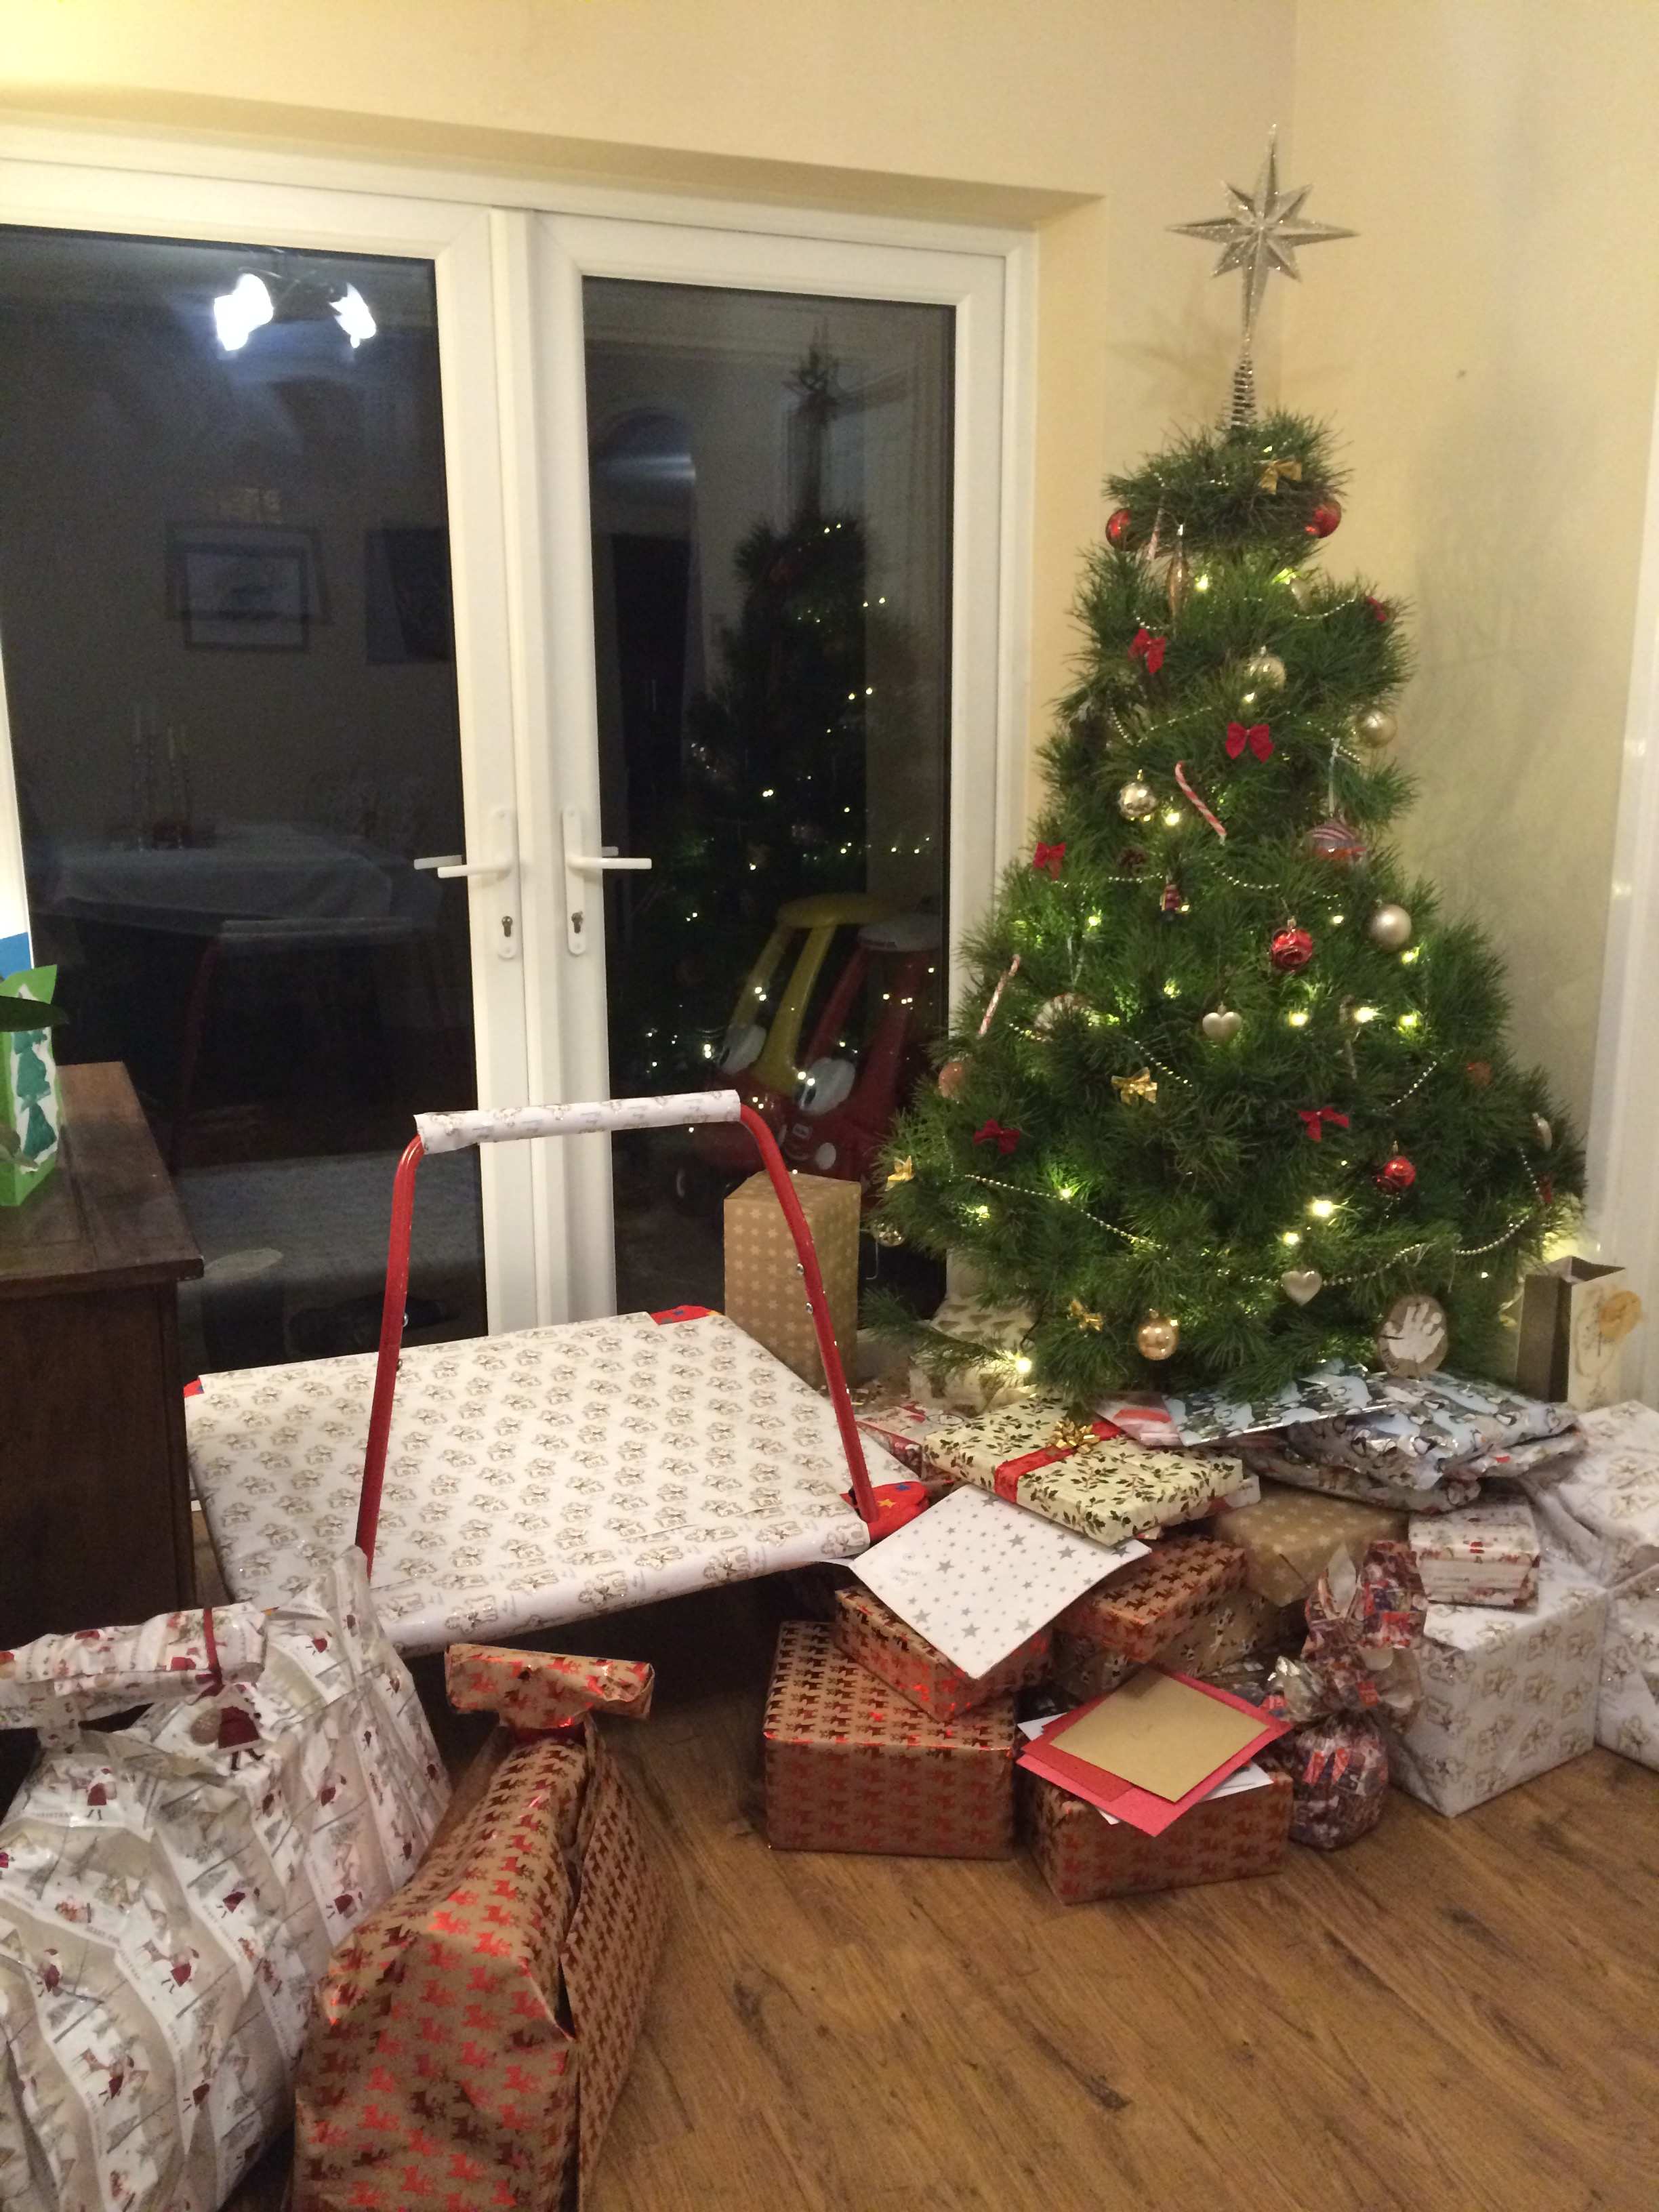 At home with Mr & Miss. C - Christmas 2016